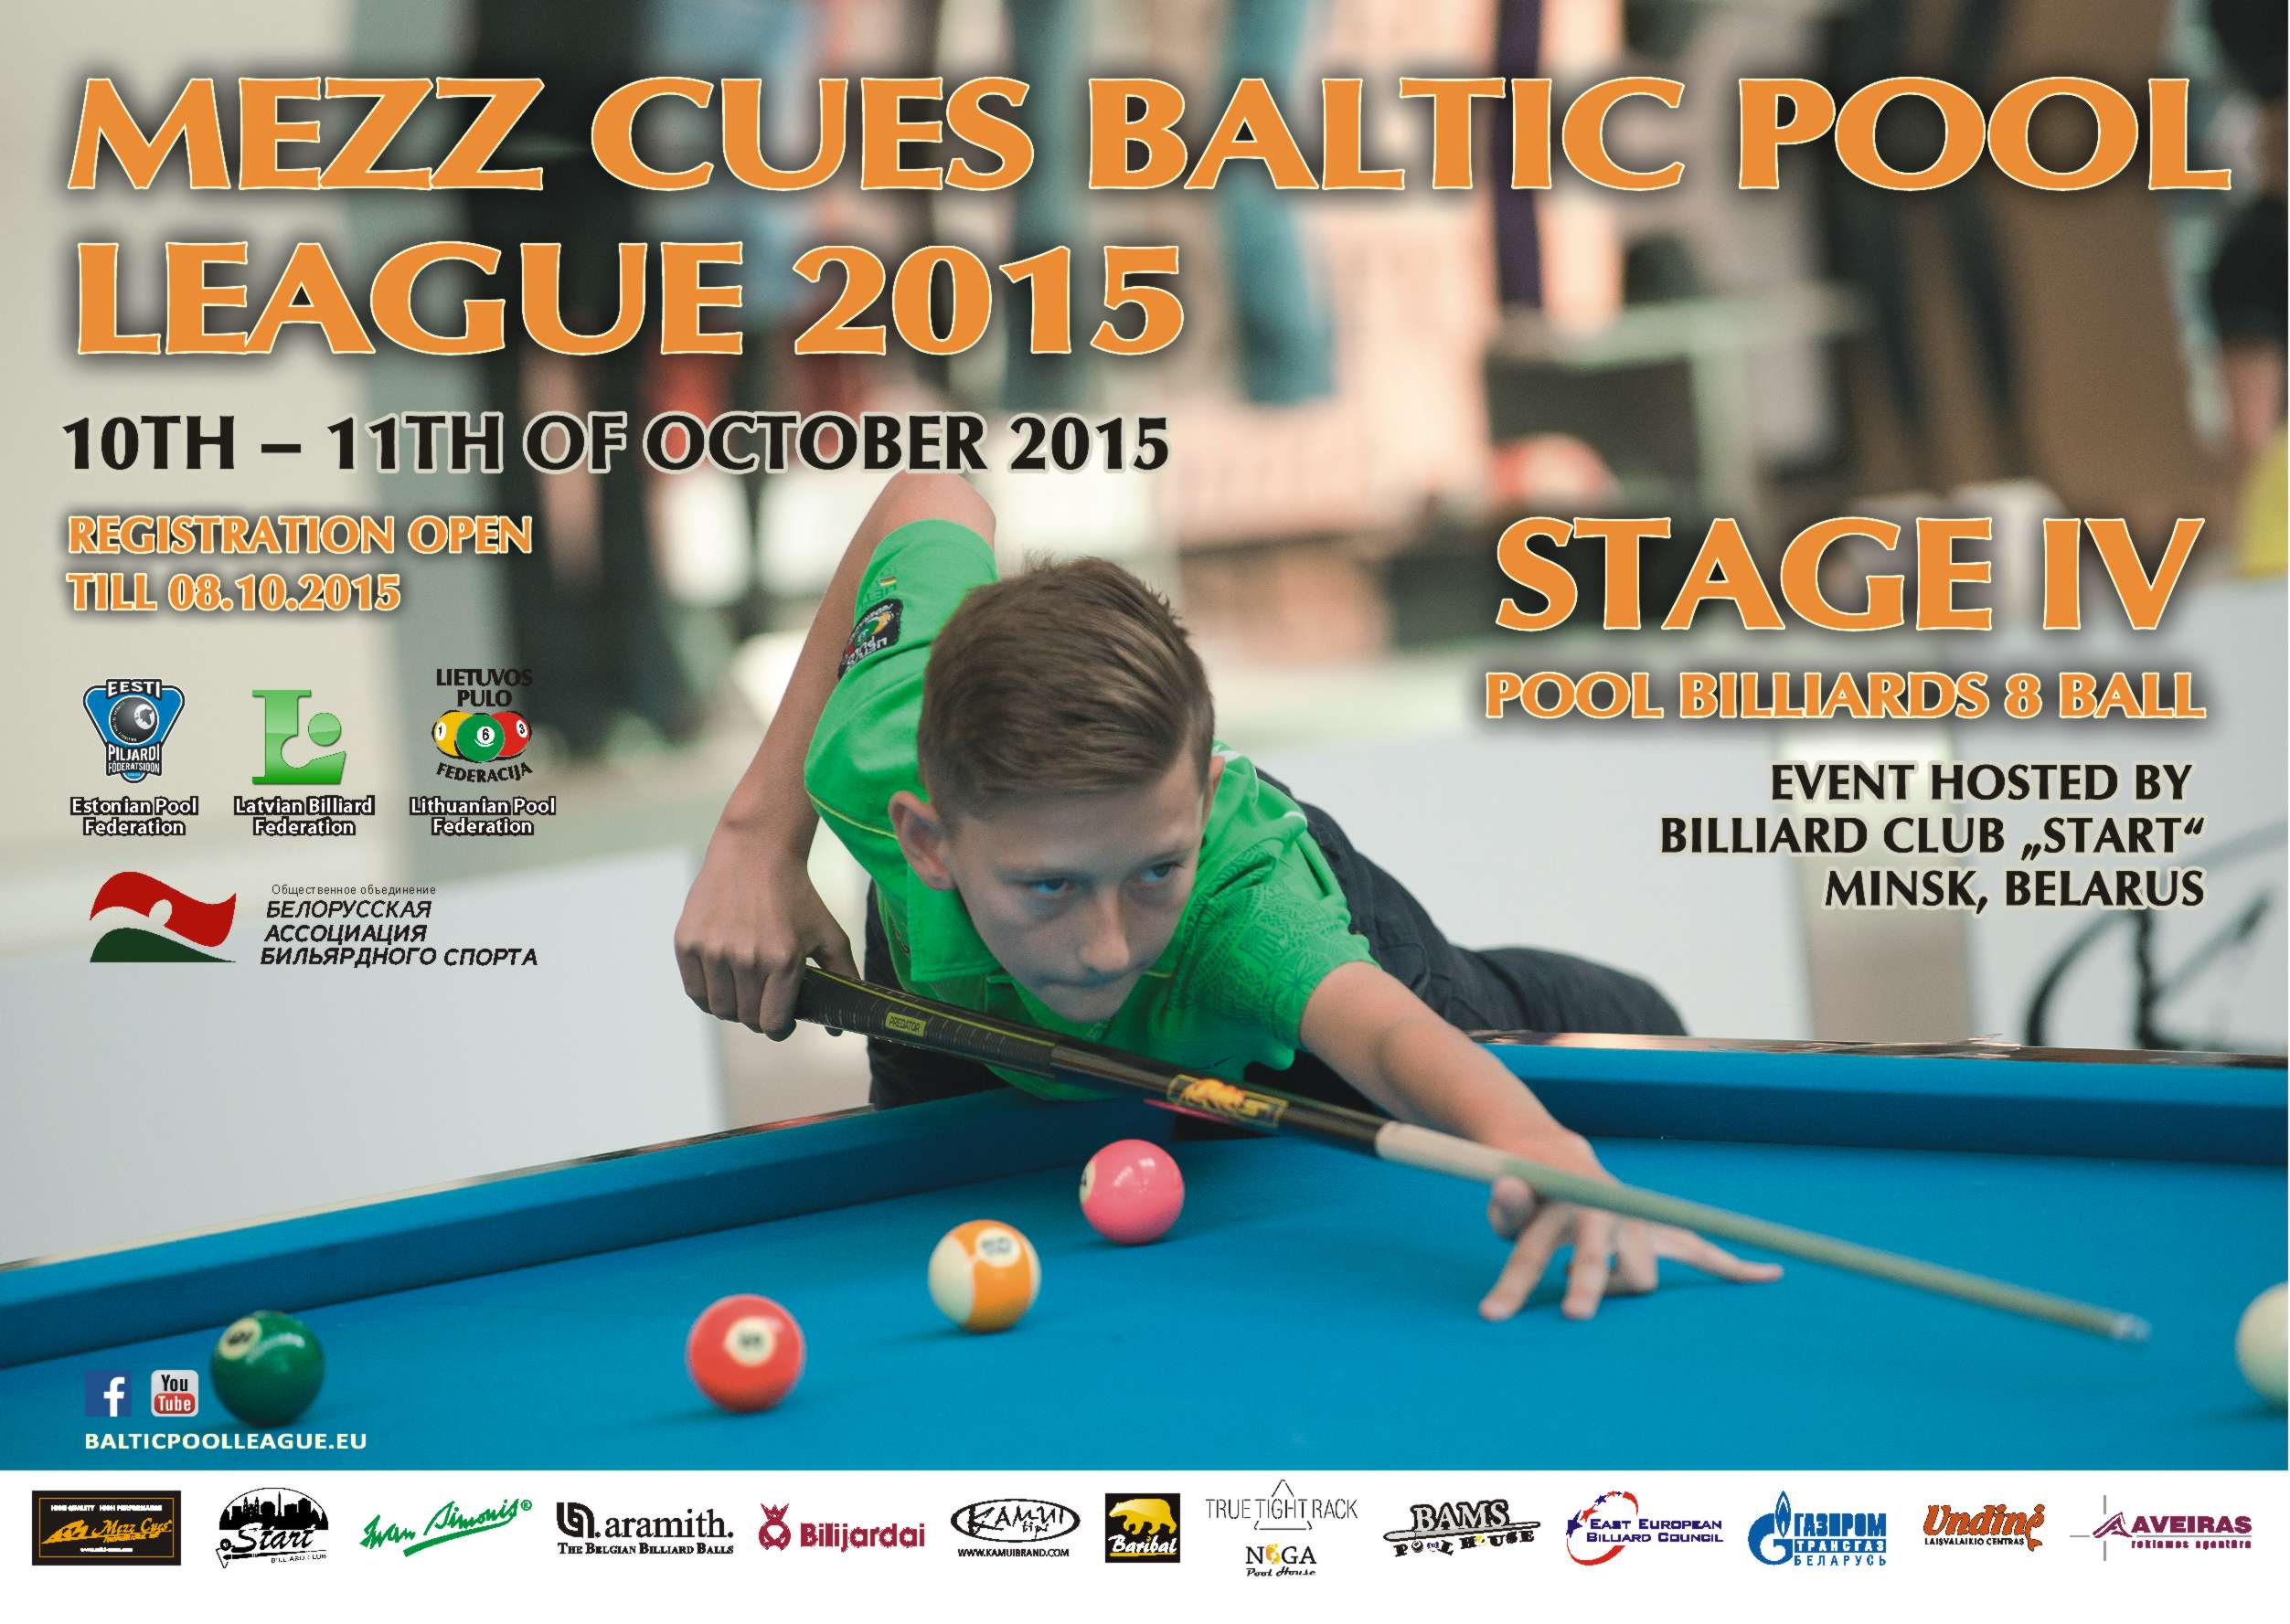 Mezz Cues Baltic Pool League 2015